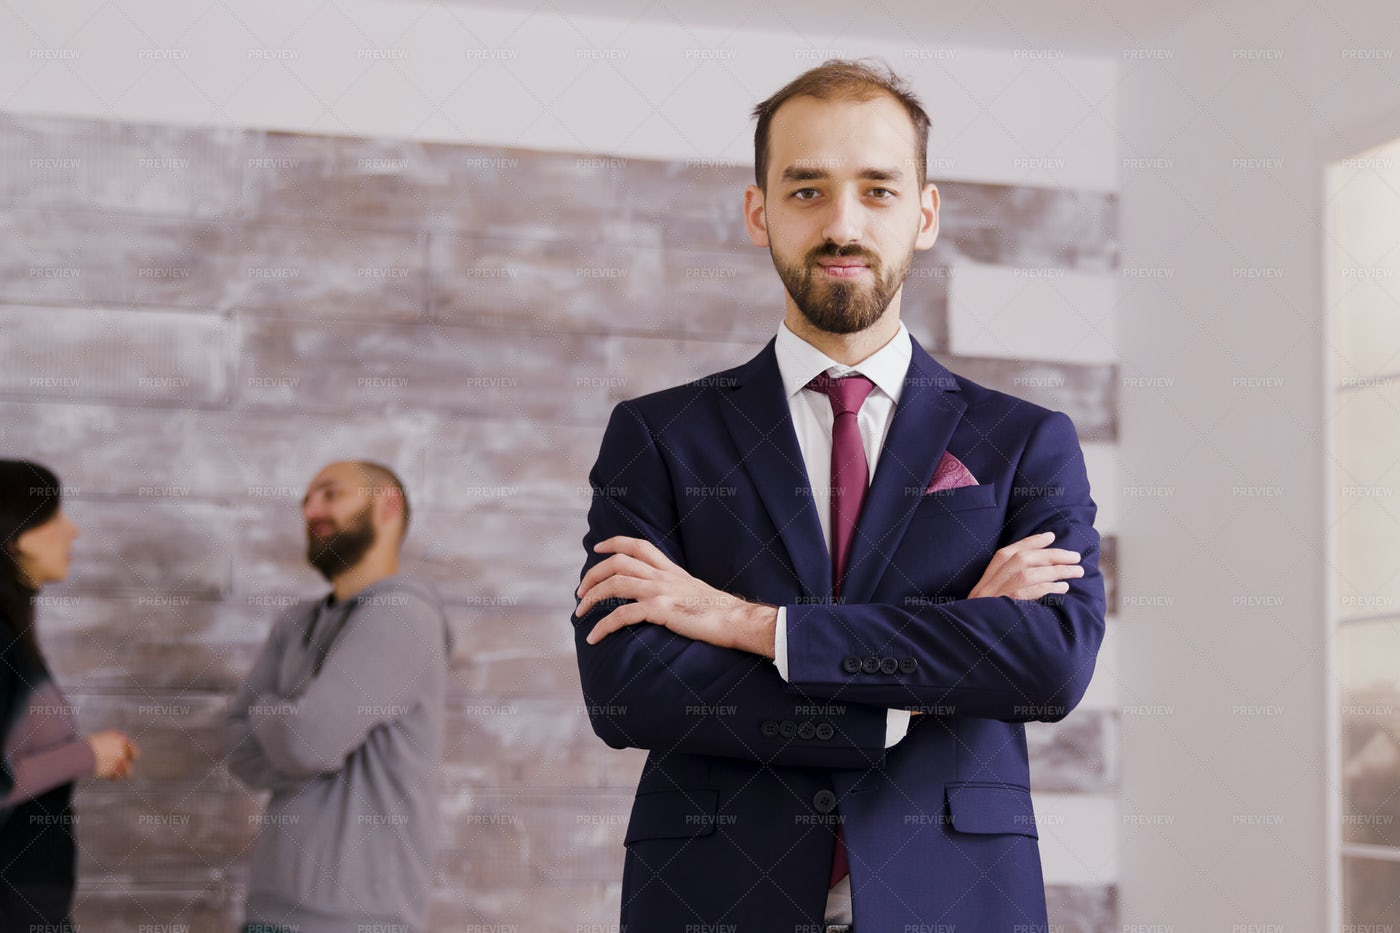 Real Estate Agent In Business Suit: Stock Photos